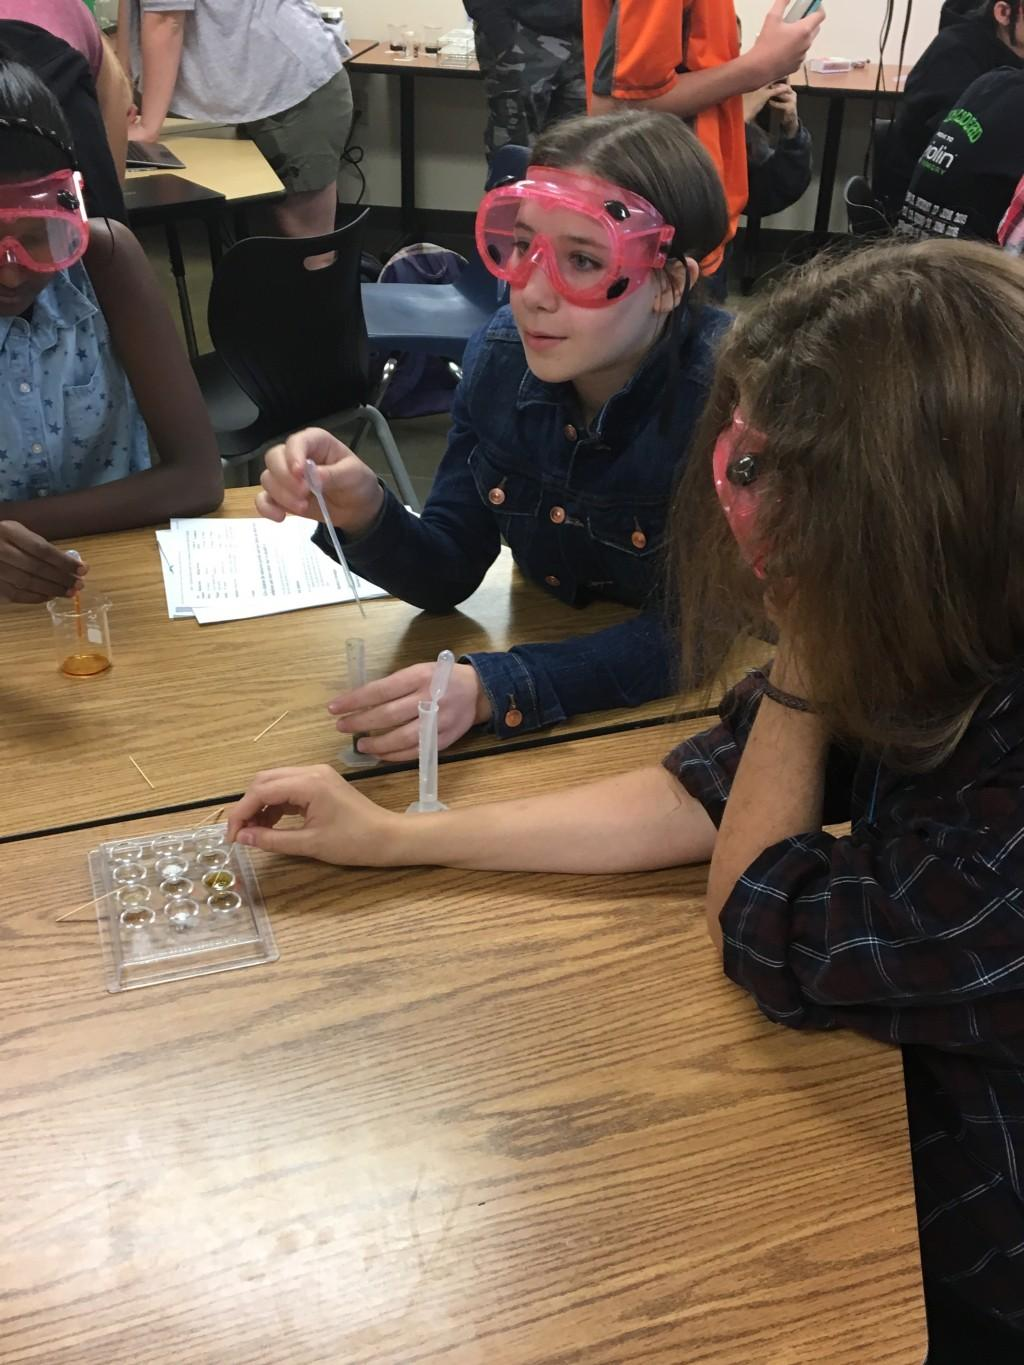 kids wearing goggles science class